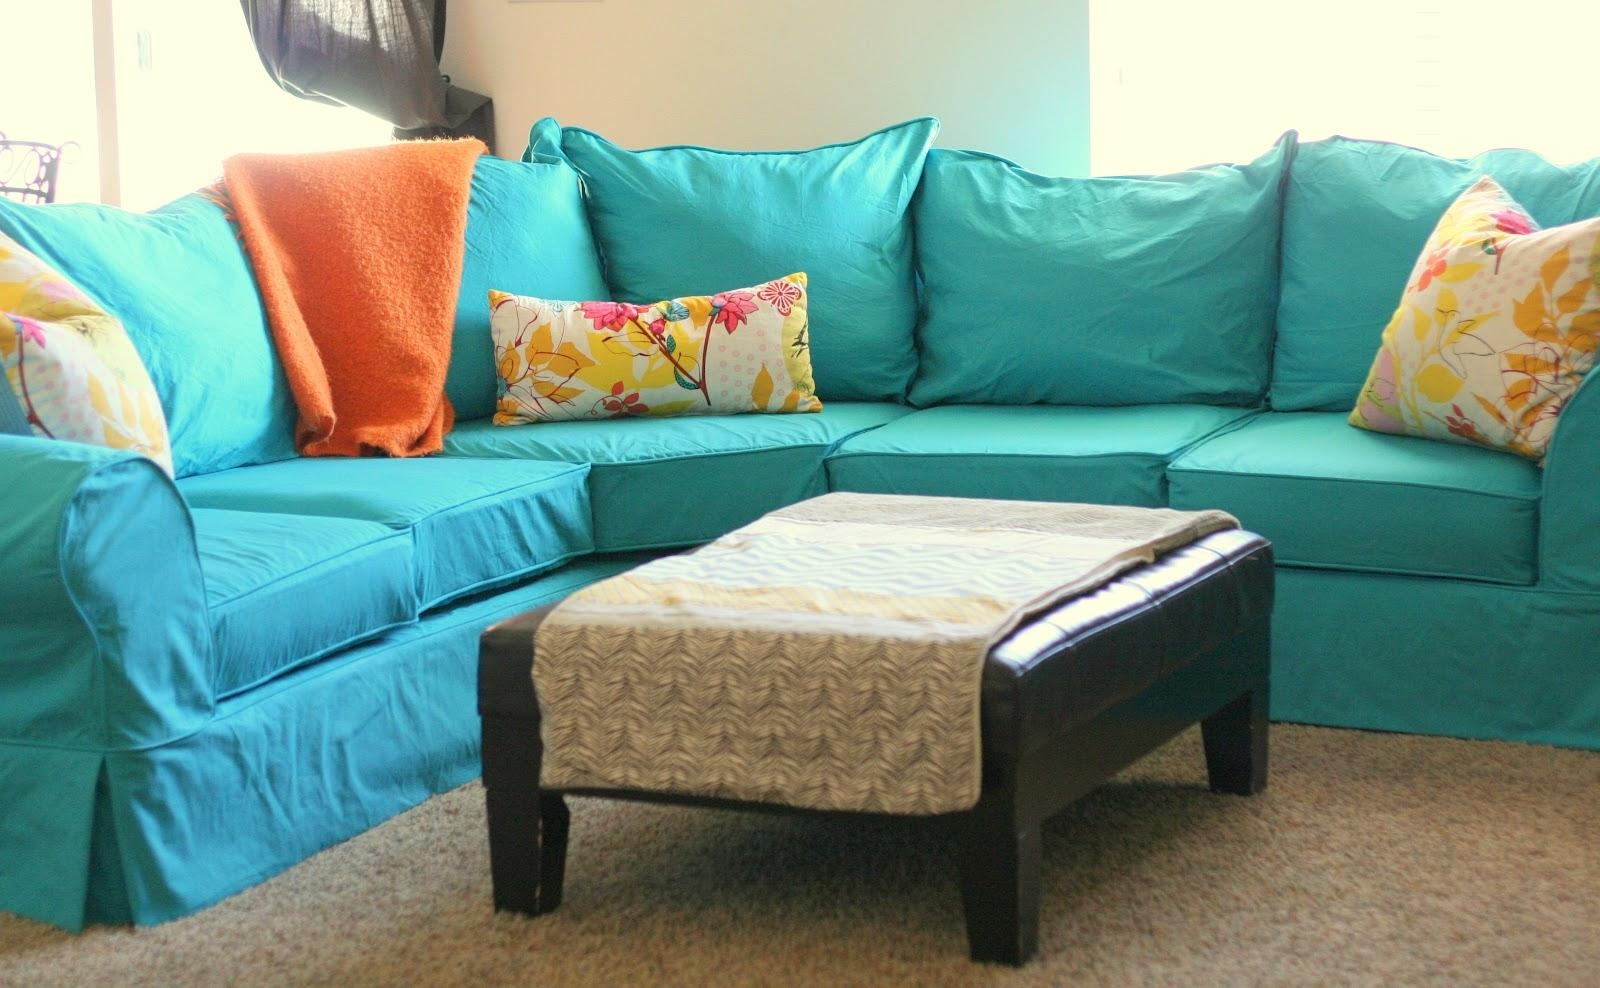 Slipcovers For Leather Couches | Homesfeed Throughout Slipcover For Leather Sofas (View 8 of 20)